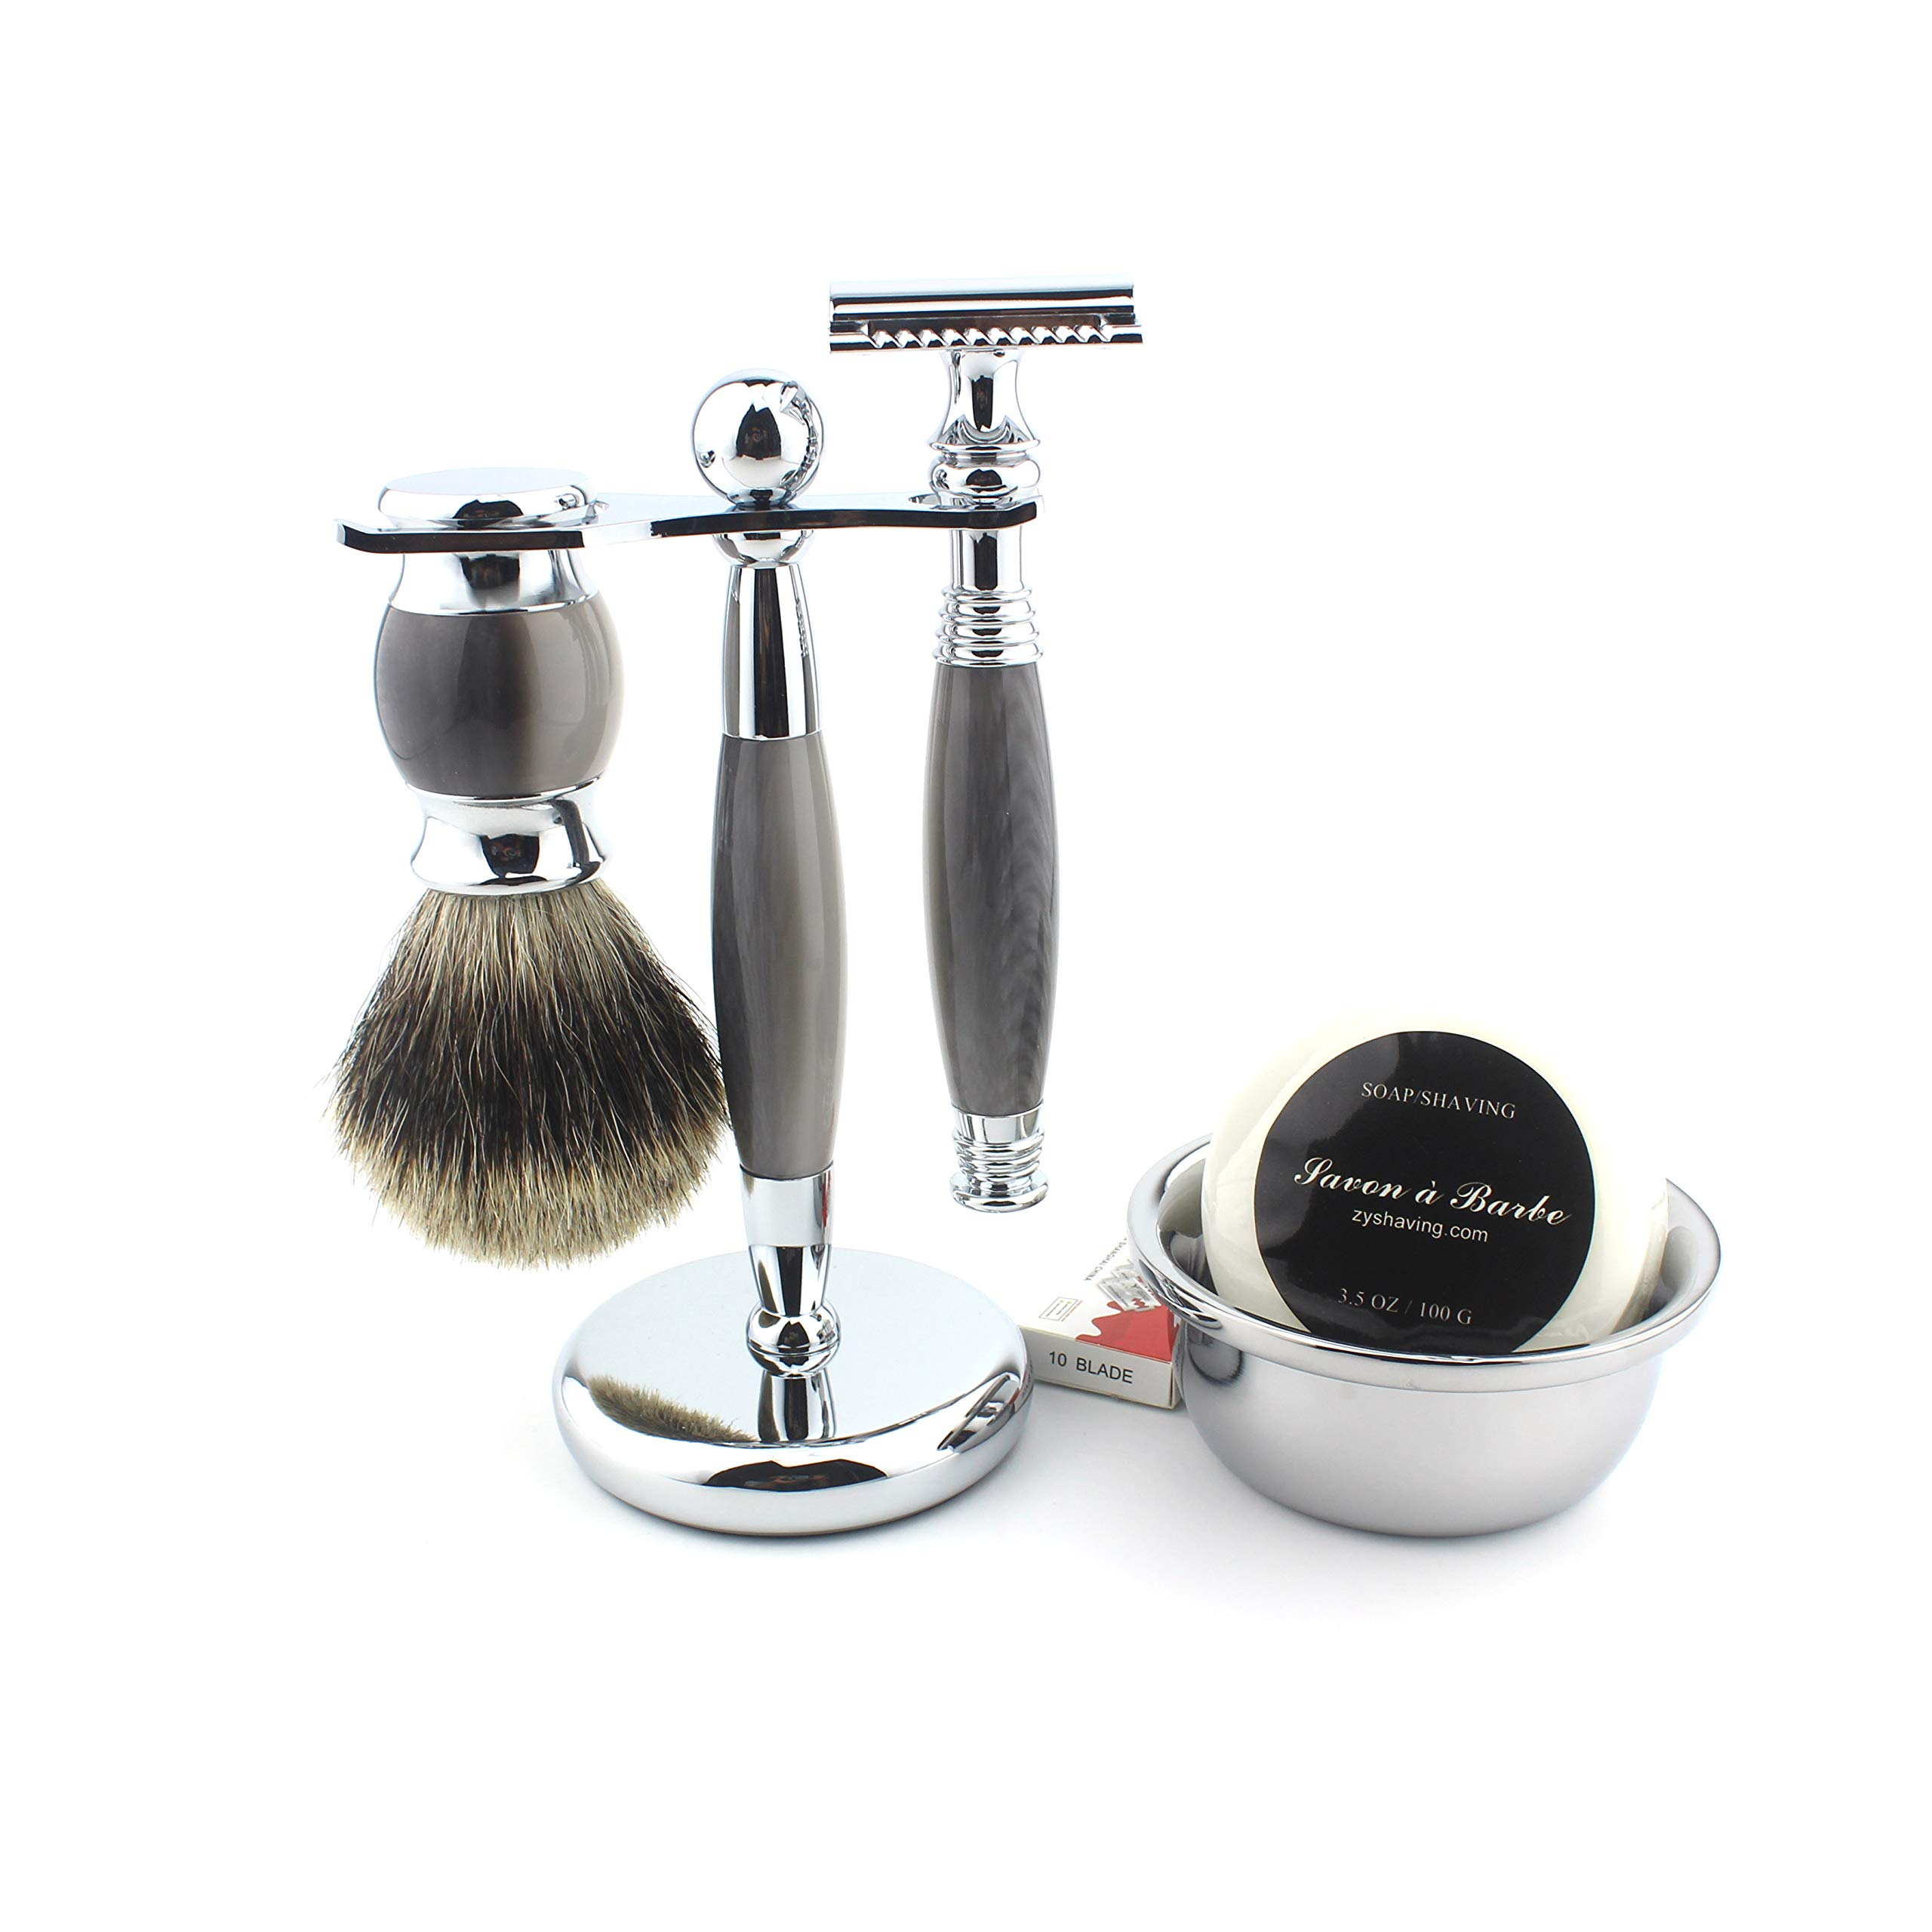 Shaving Gift Kit for Men,Yunlep Luxury Grooming Wet Shaving Set Including Razor with 10 Replacement Blades,Chrome Stand,Bowl,Shaving Soap,Shaving Brush (Gray) by Yunlep